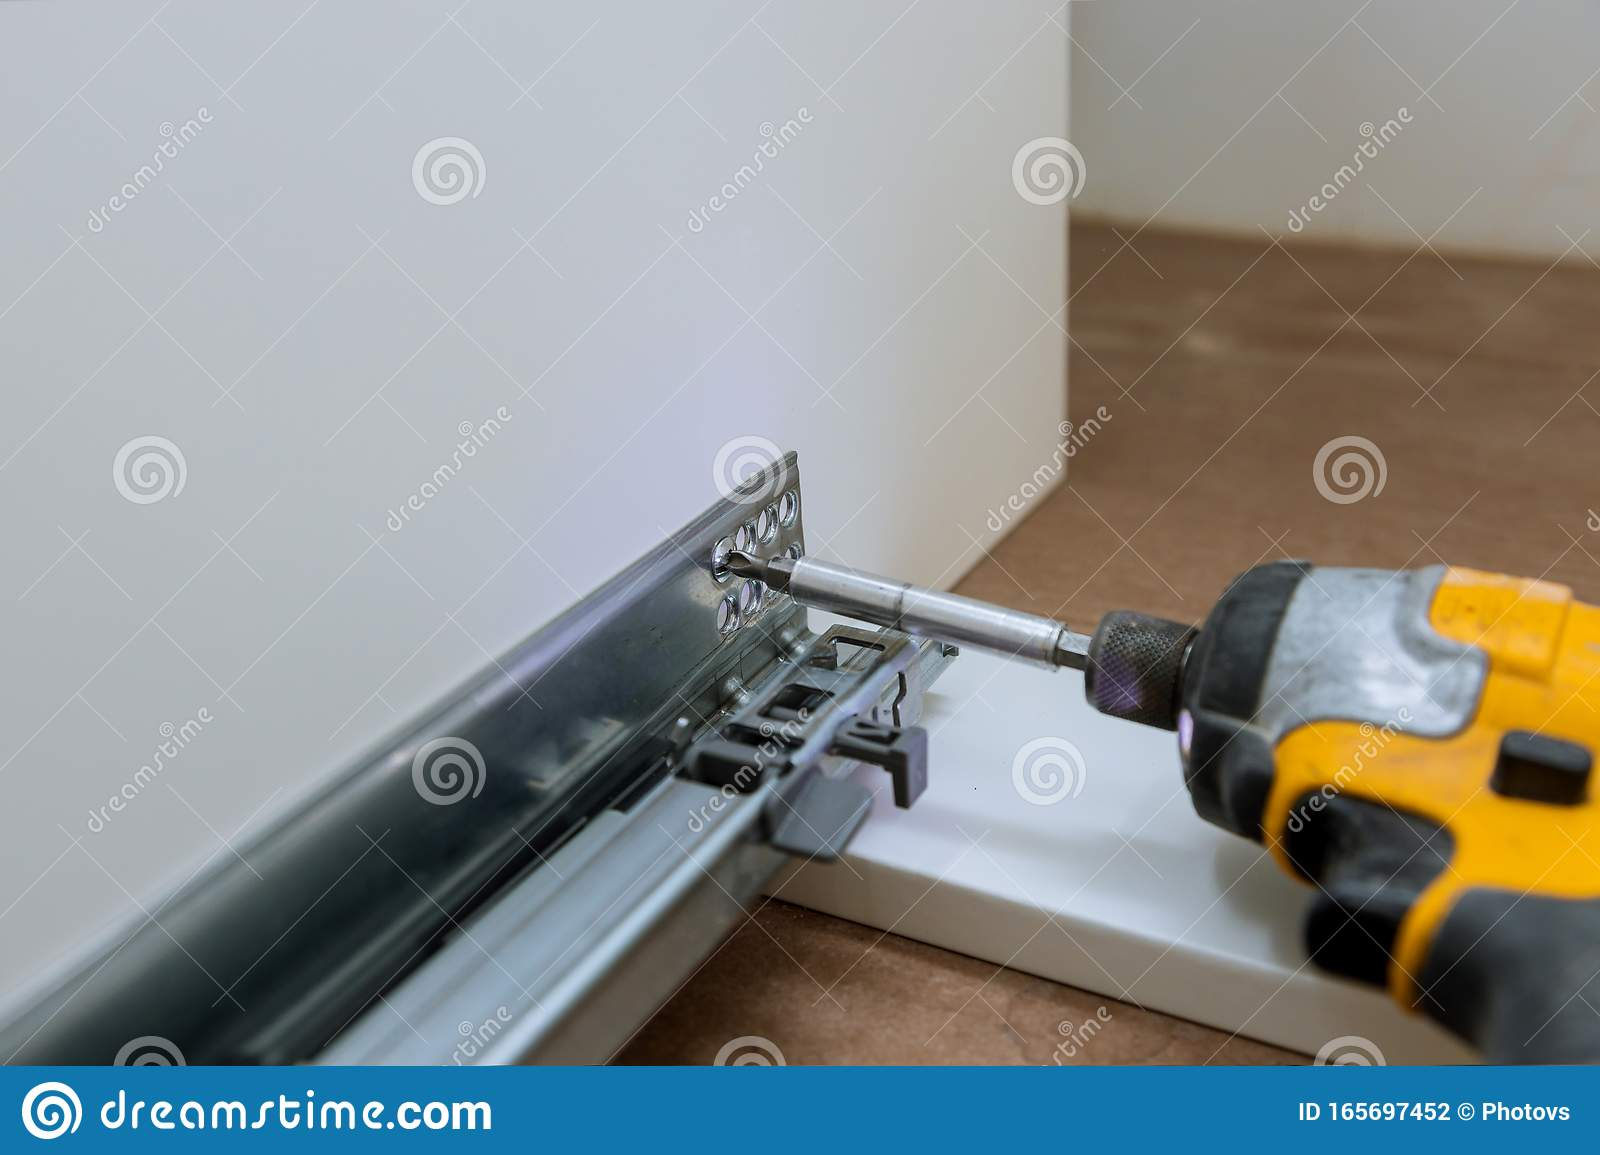 Hinge Drawers Assembly On Assembling A Kitchen Cabinet Furniture Stock Photo Image Of House Manual 165697452